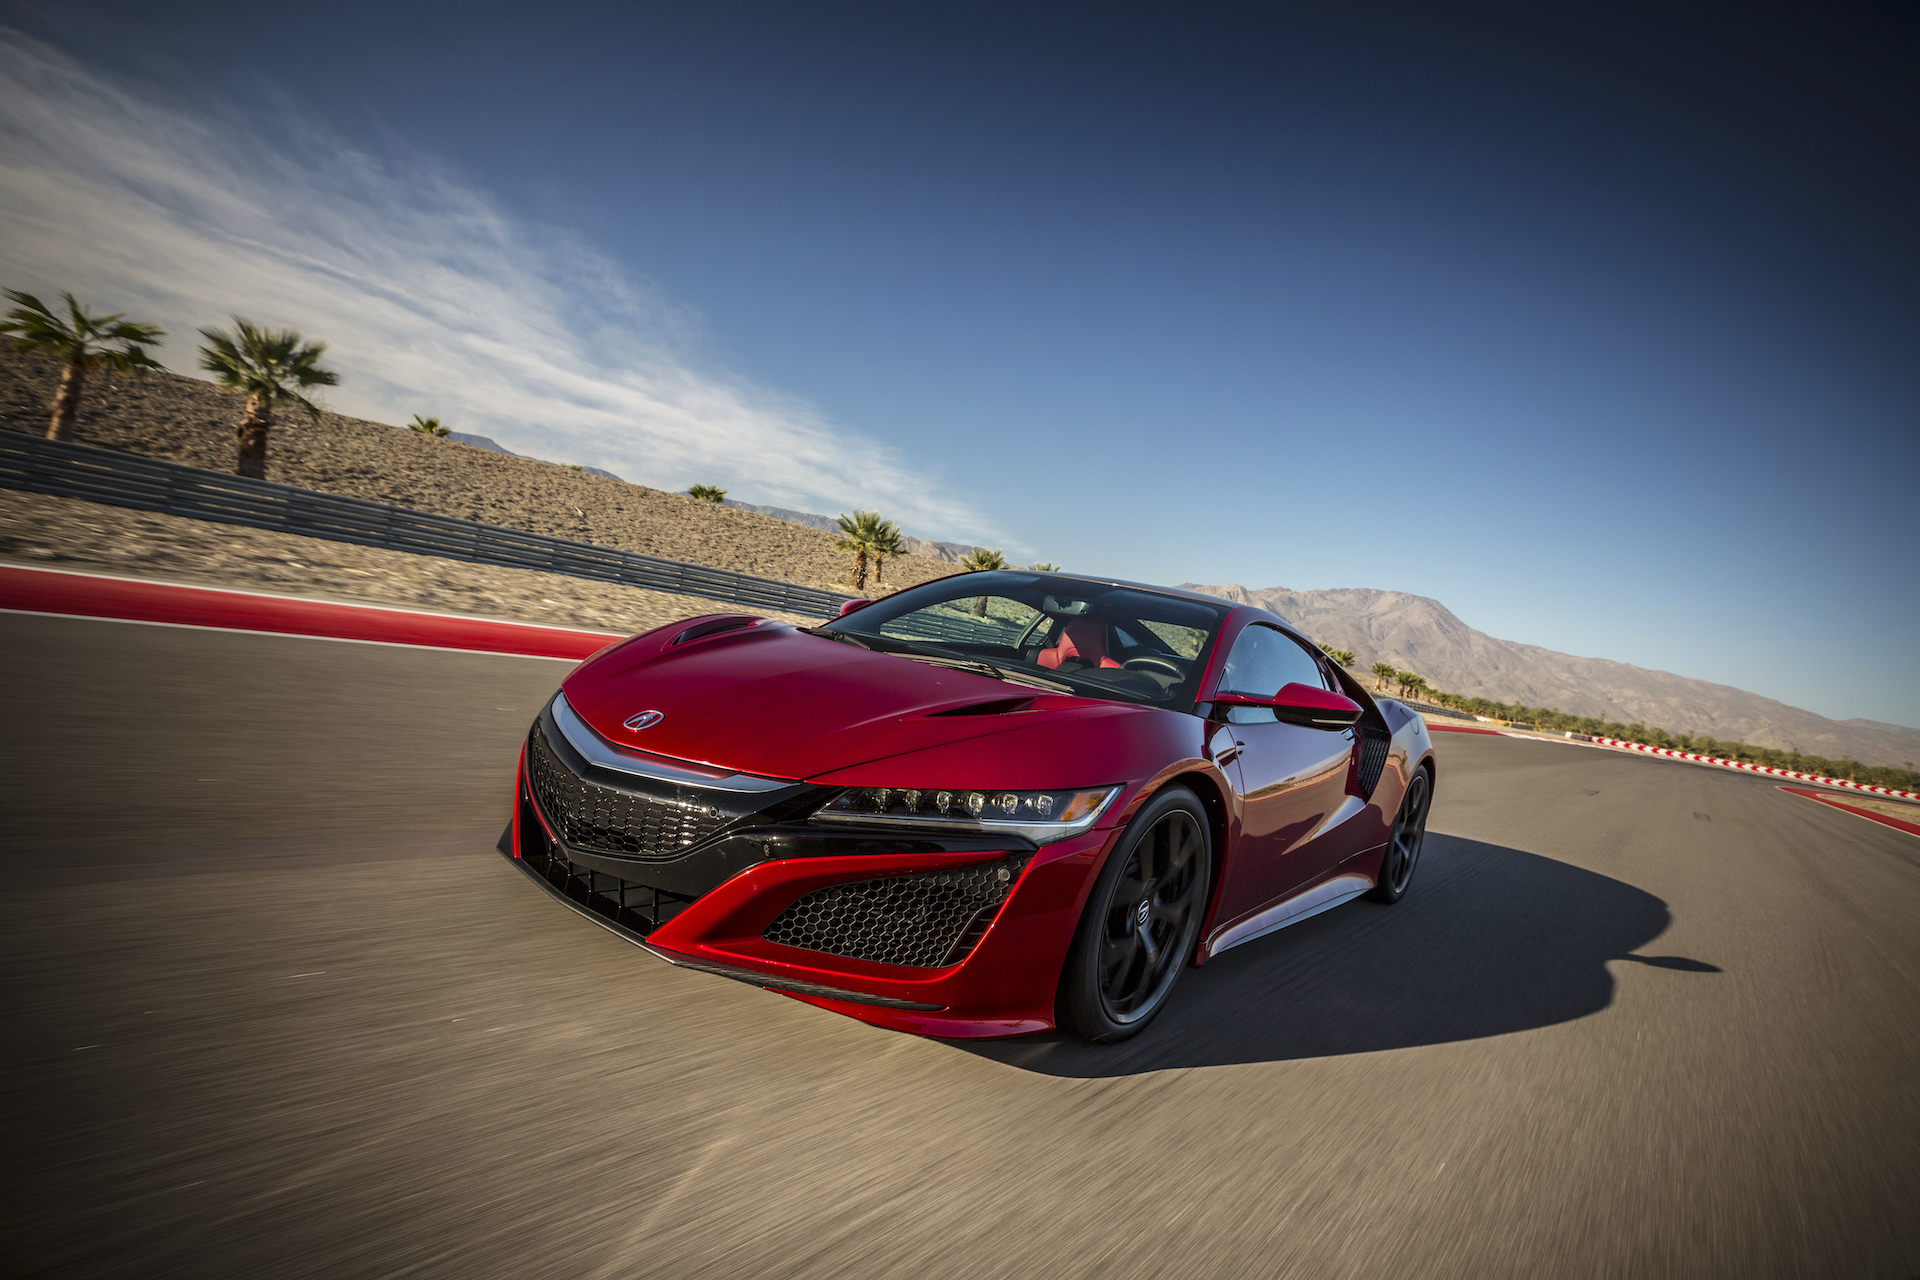 2017 Acura NSX Performance Review - The Car Connection